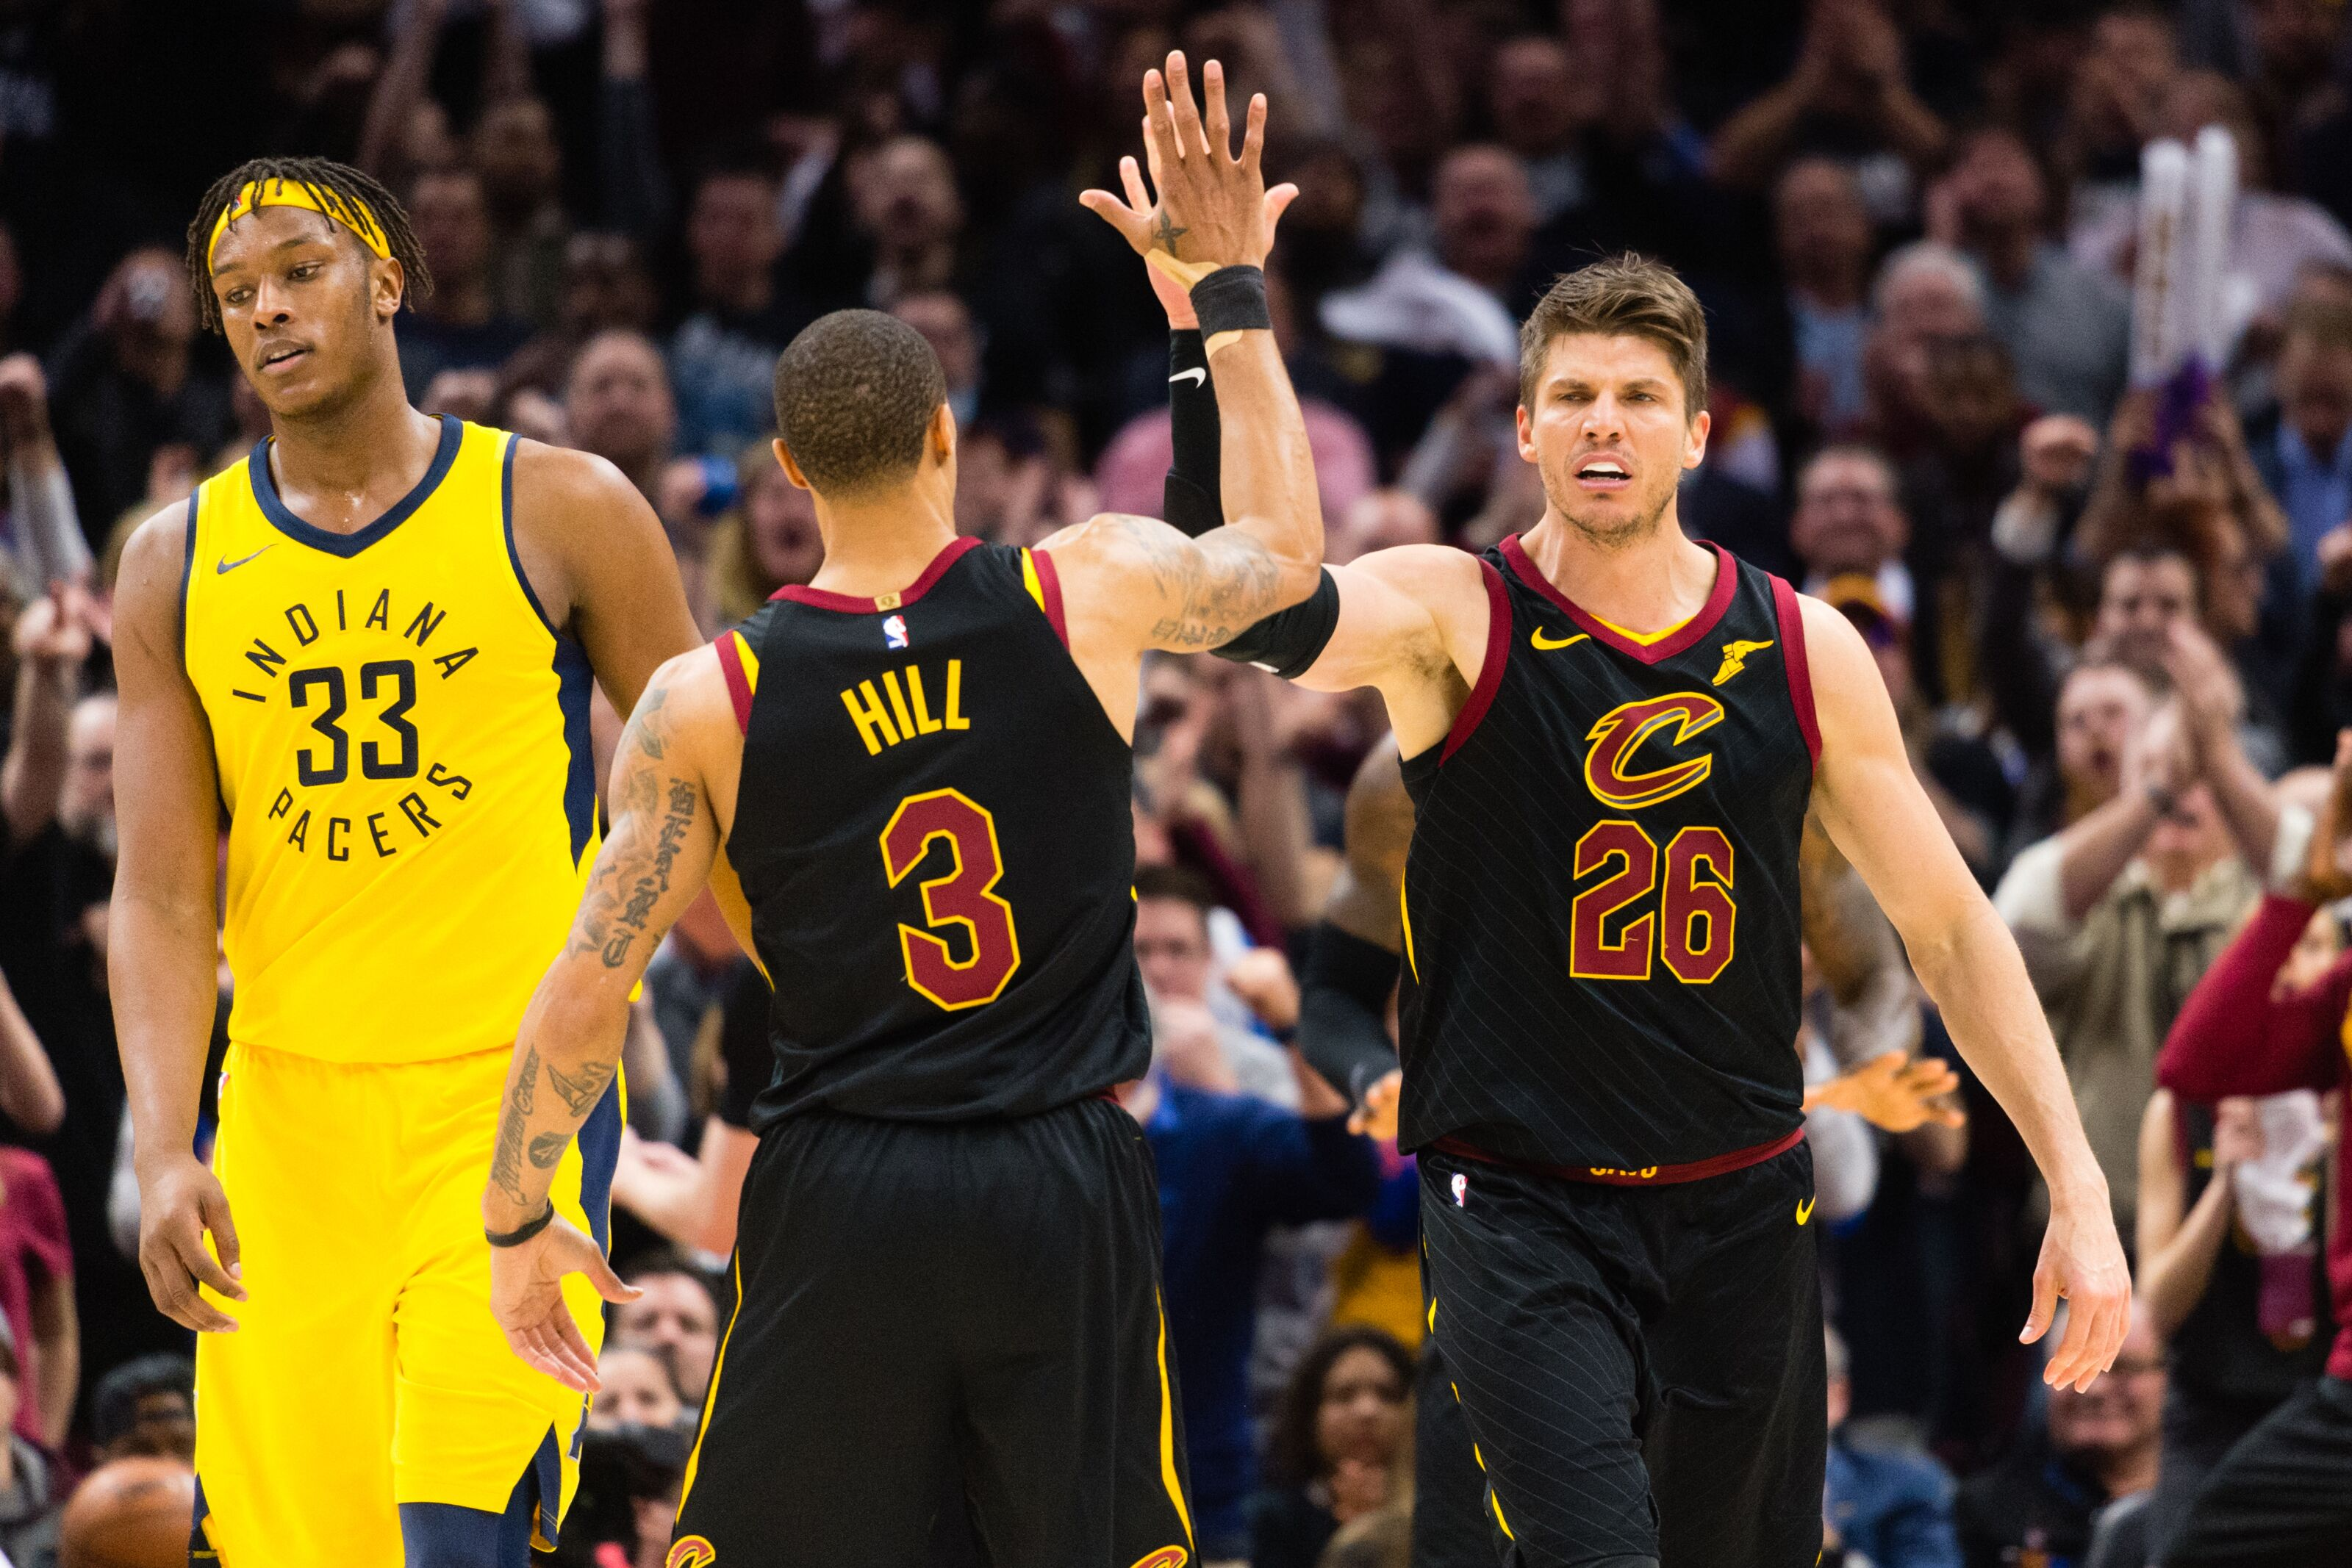 948353766-indiana-pacers-v-cleveland-cavaliers-game-two.jpg